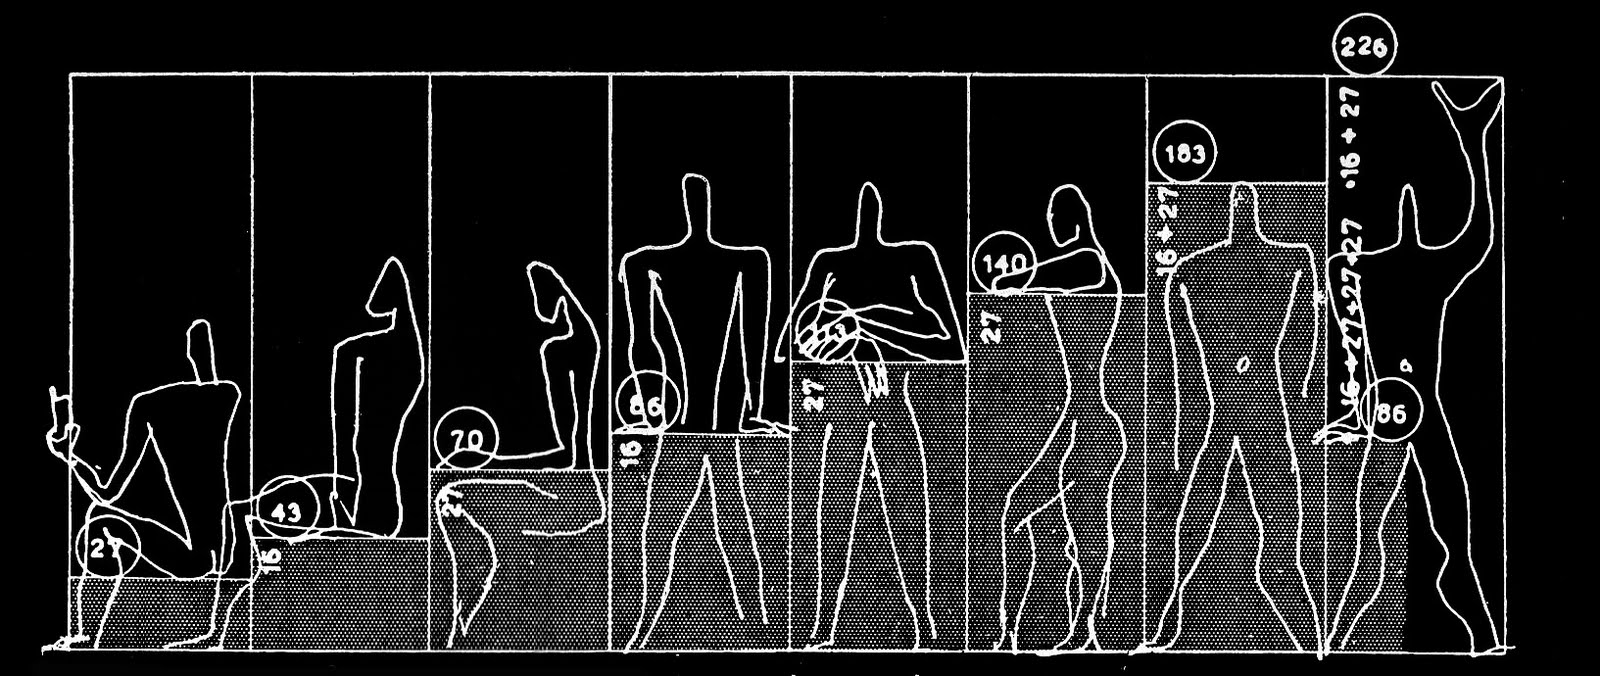 1000 images about dt data and drawings of human beings on pinterest le corbusier leonardo da. Black Bedroom Furniture Sets. Home Design Ideas